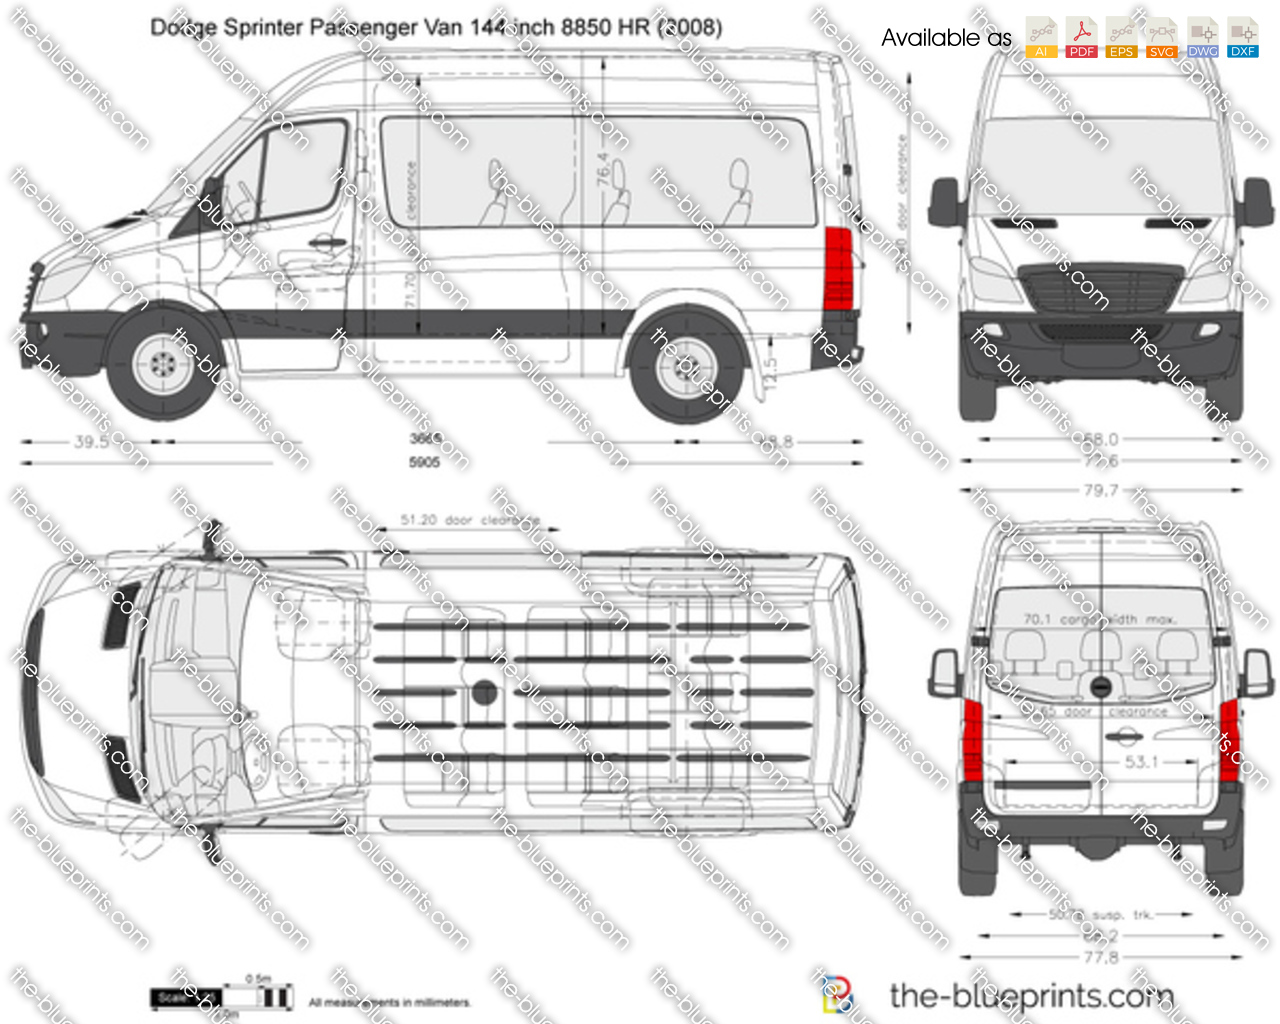 Jeep Wrangler Decals in addition General tech basic six simple machines as well 12874847 Cherry Blossom Tree Sumi E Painting Sakura Art Print further Dodge sprinter passenger van 144 inch 8850 hr in addition Finish Mower. on side by 50 inch